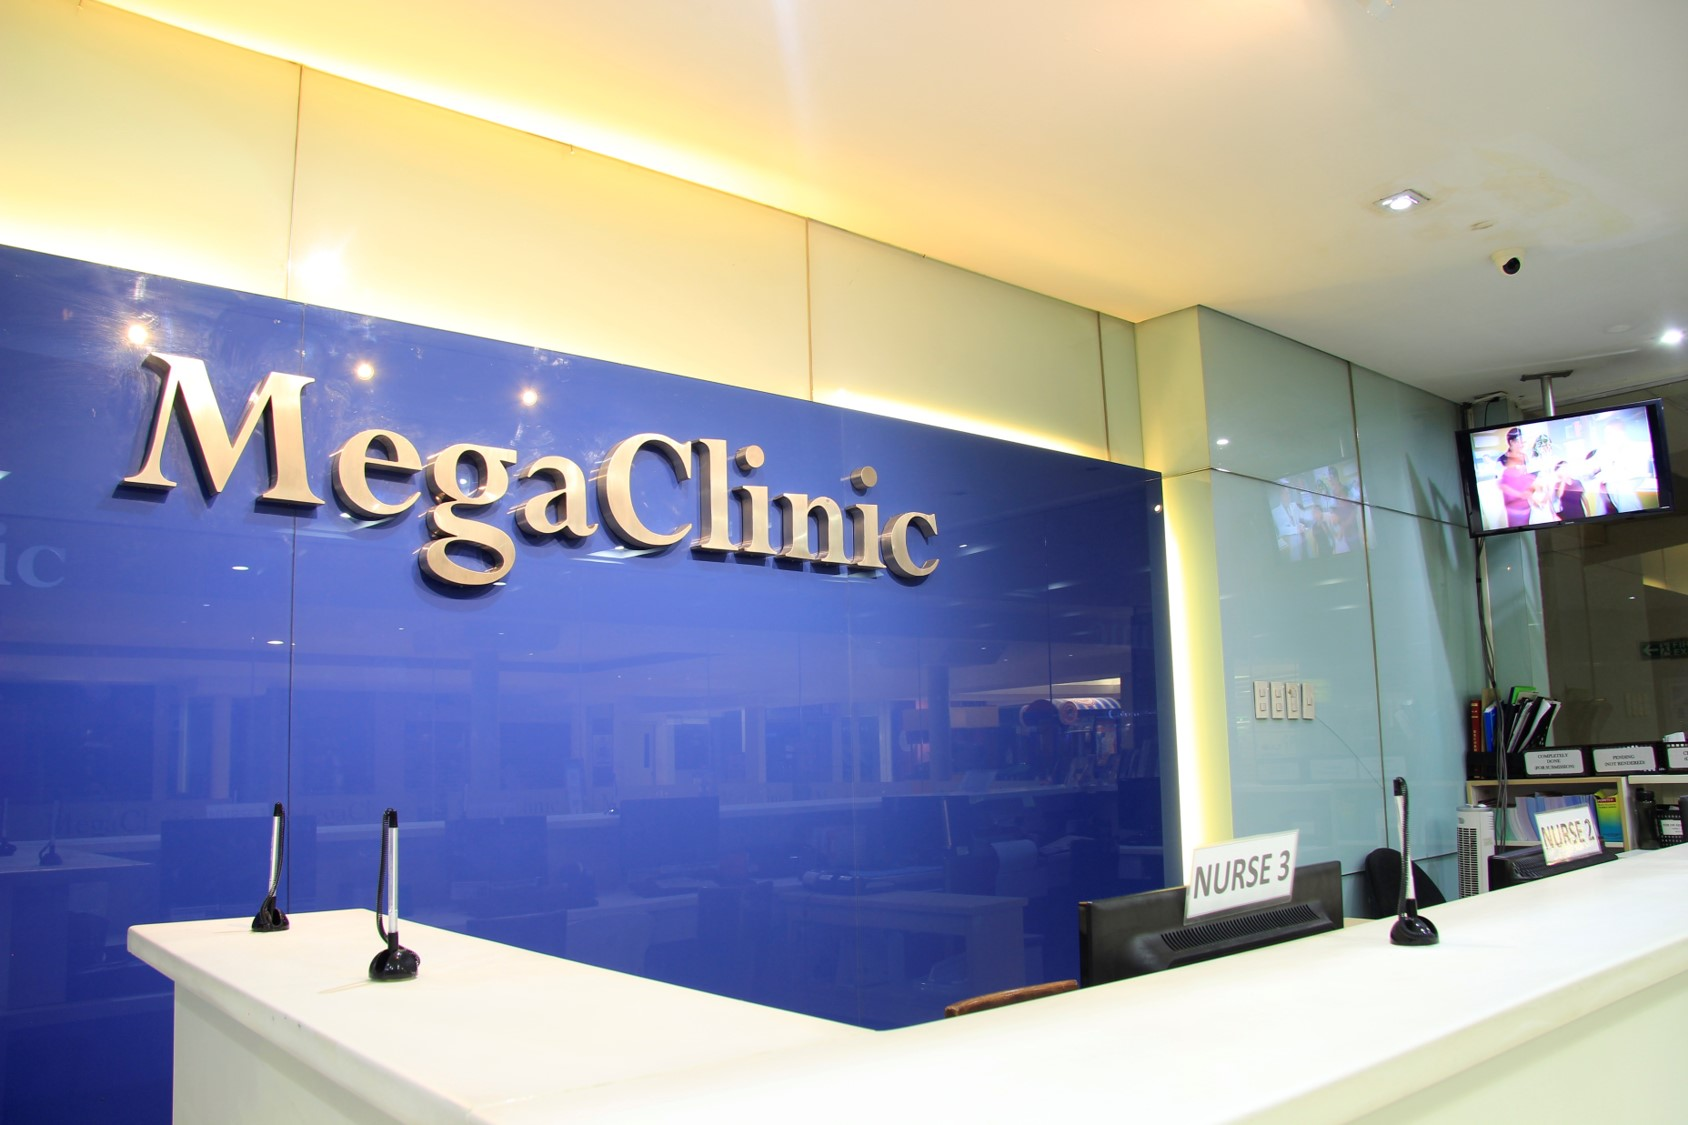 Metro Sanitas starts a network of medical clinics in the Philippines with the acquisition of MegaClinic